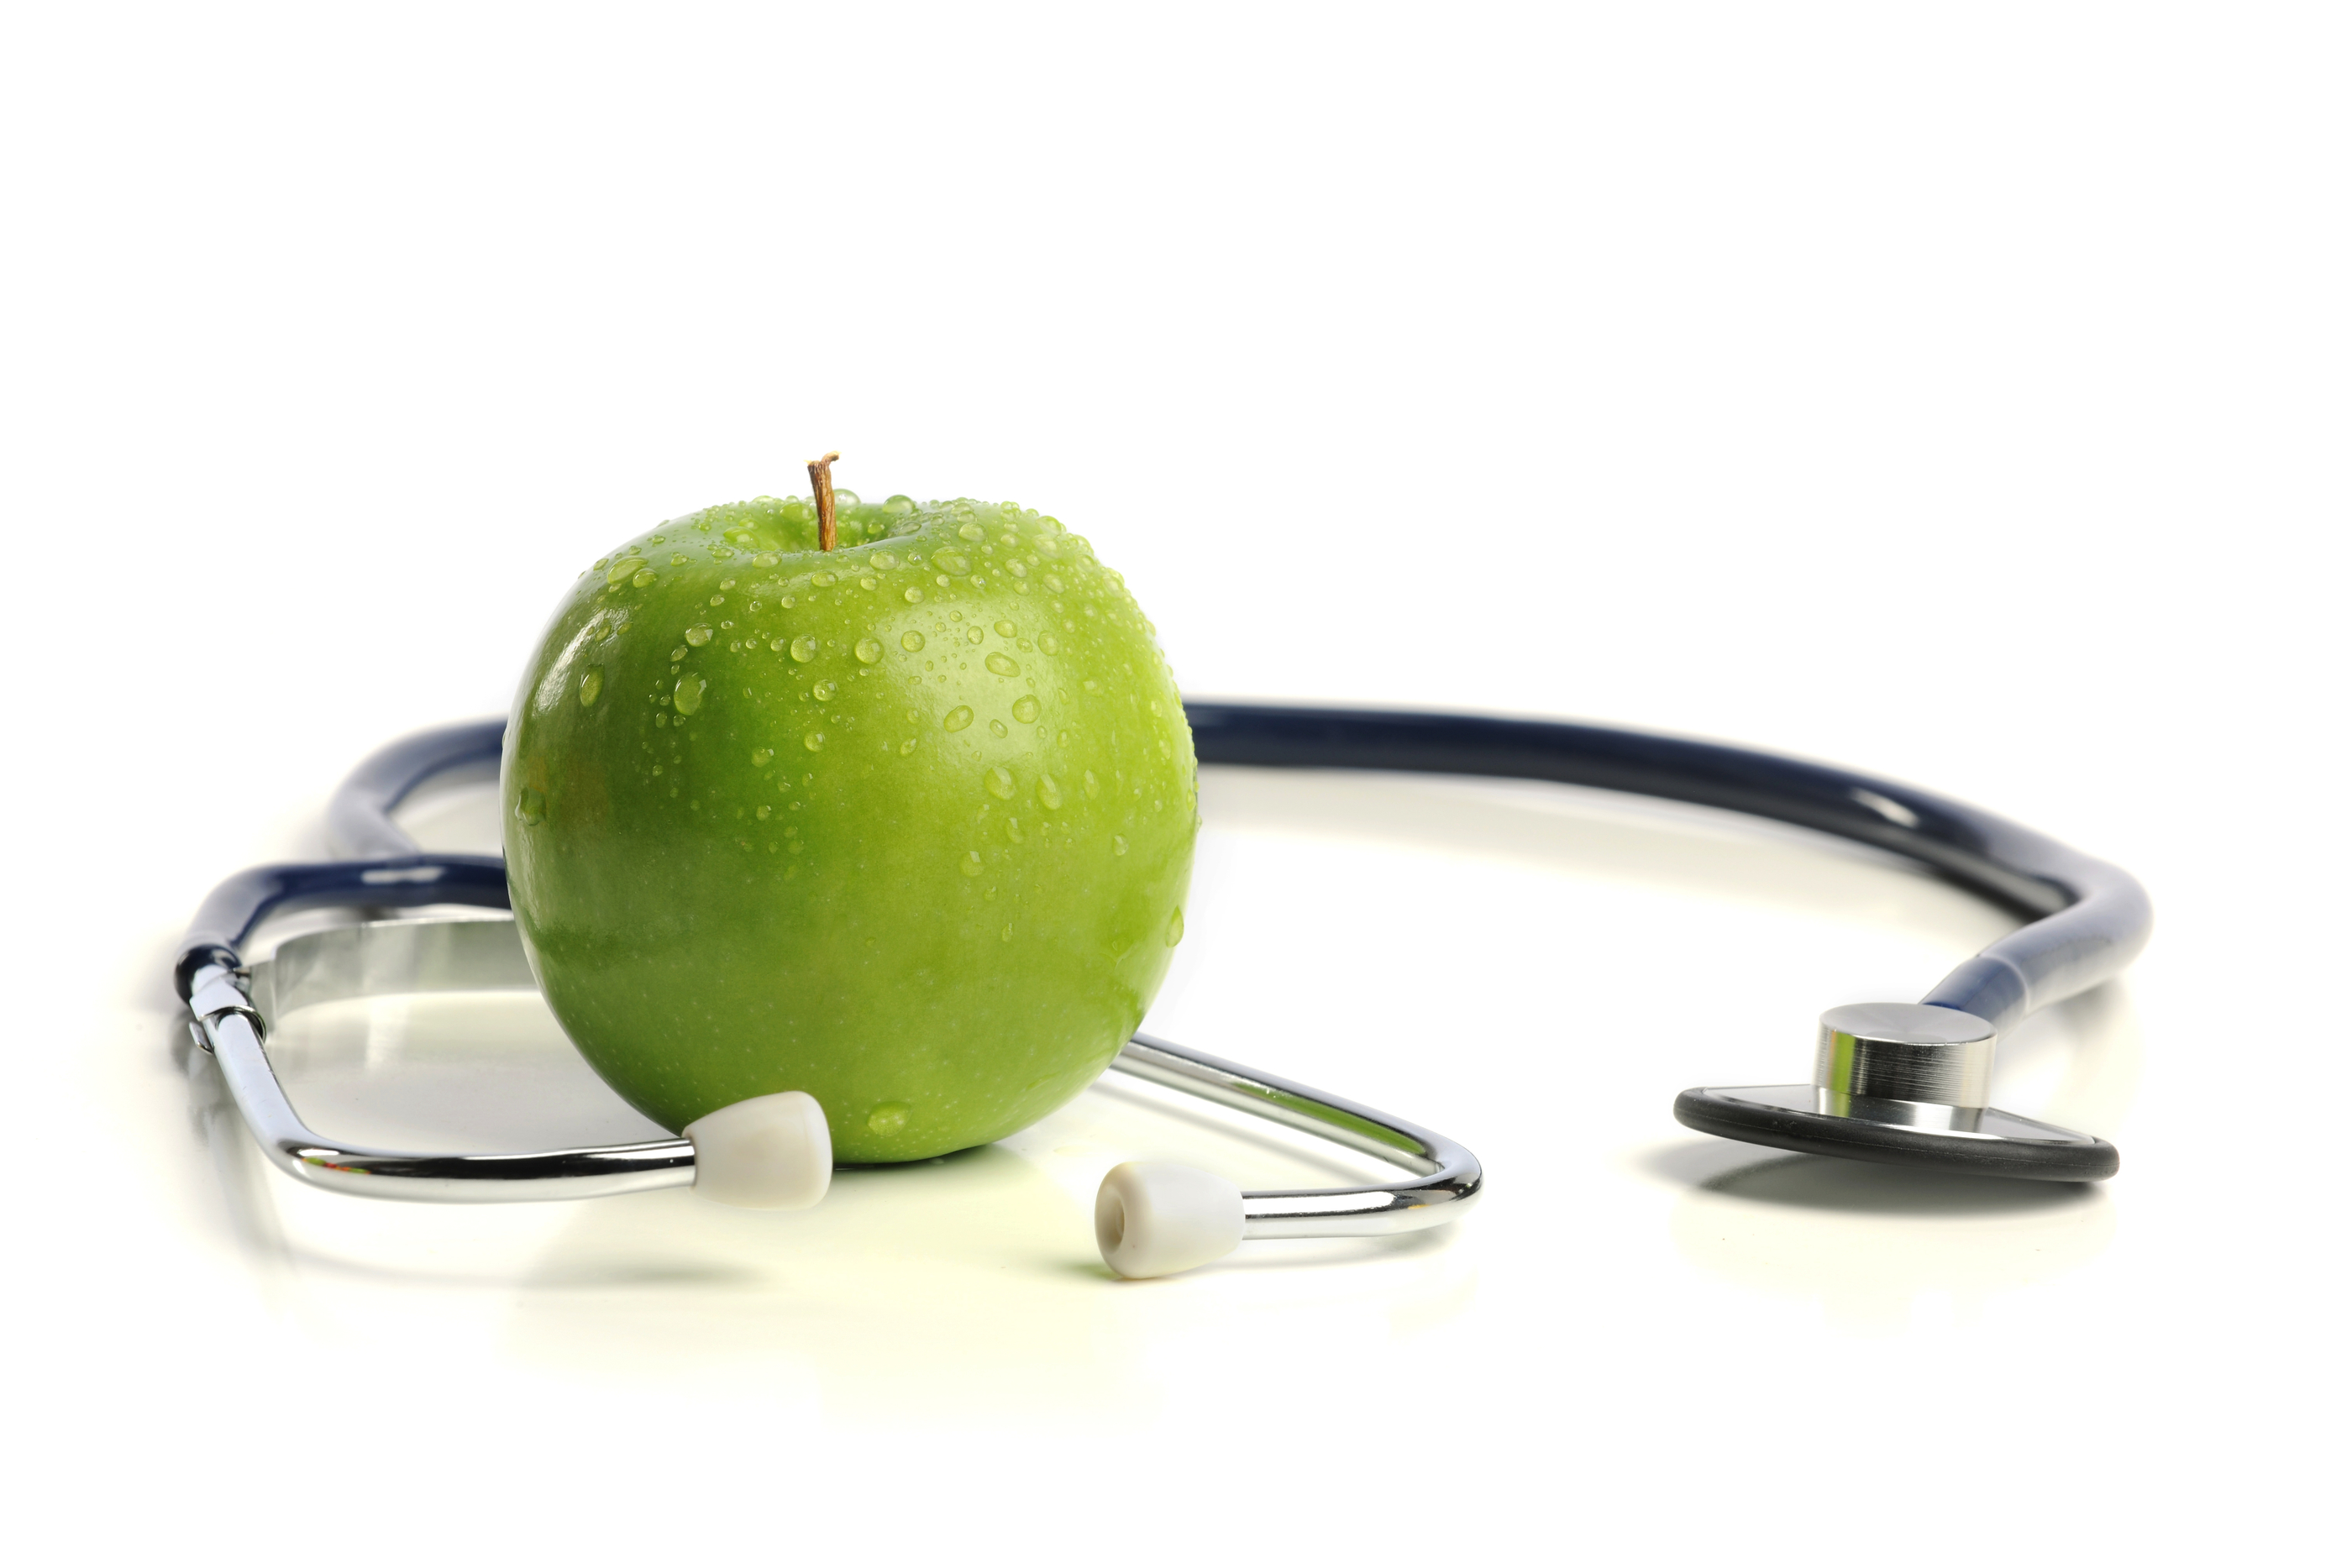 Stethoscope and Apple isolated on a white background